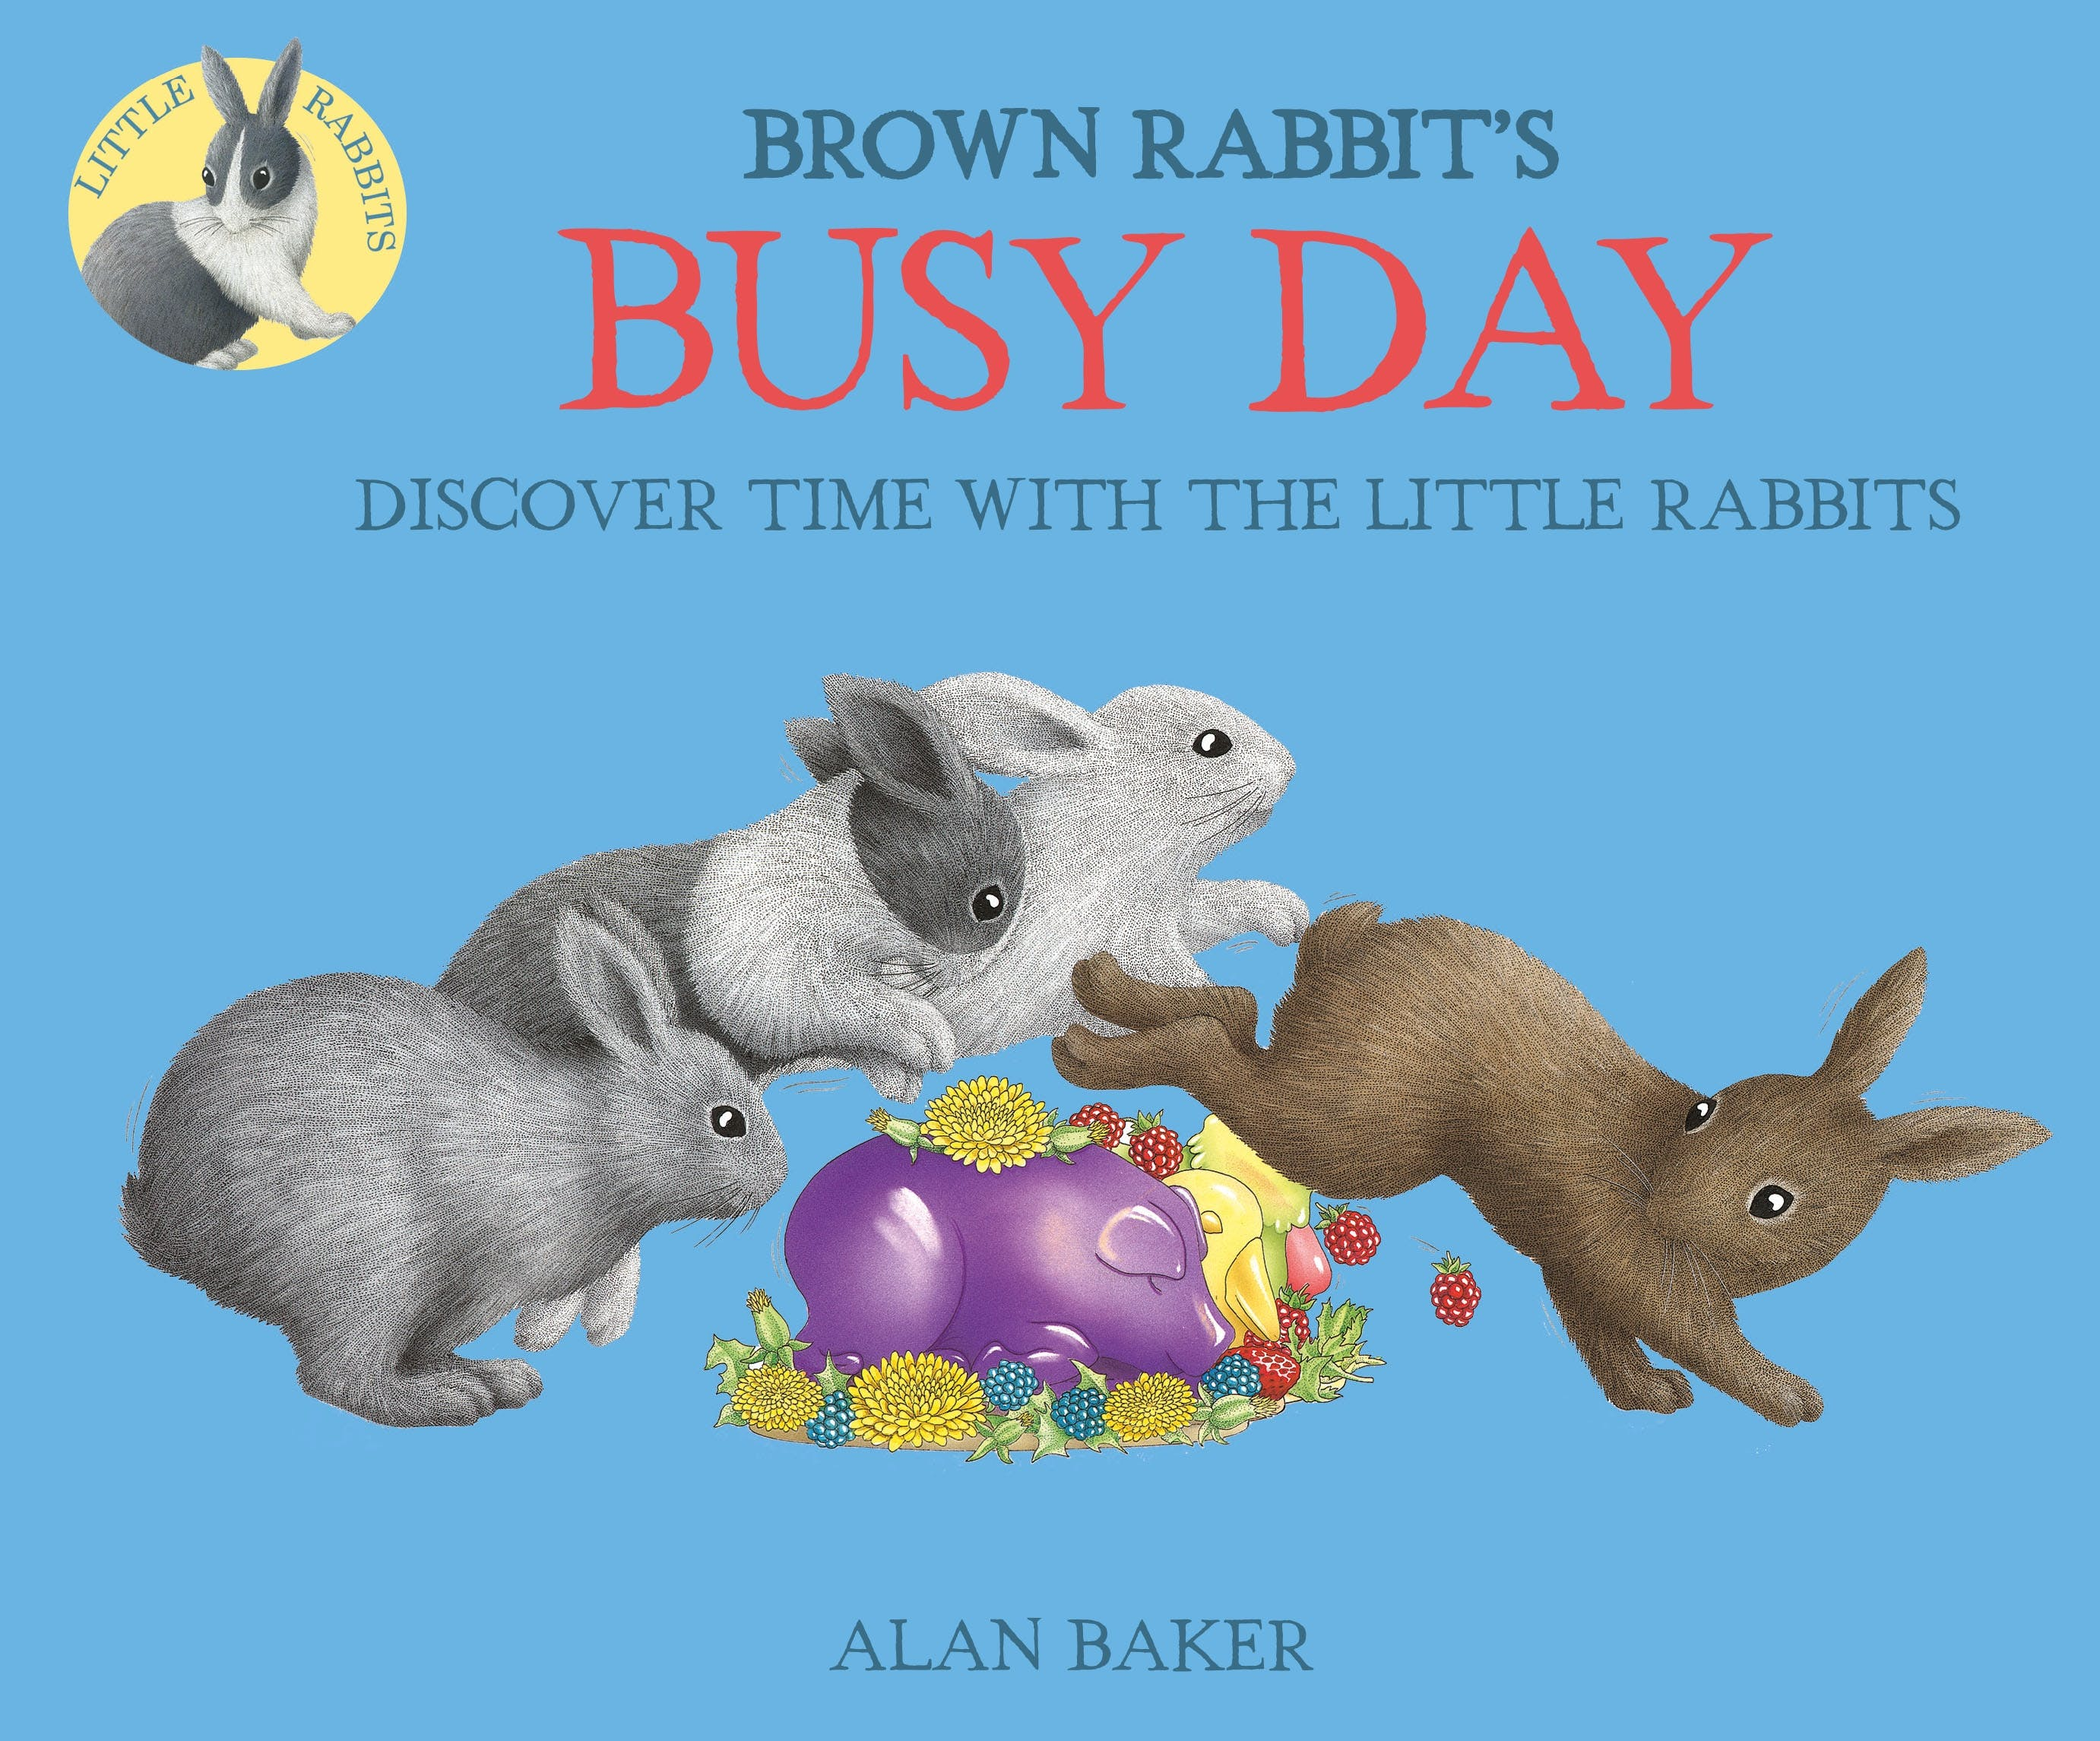 Image of Brown Rabbit's Busy Day